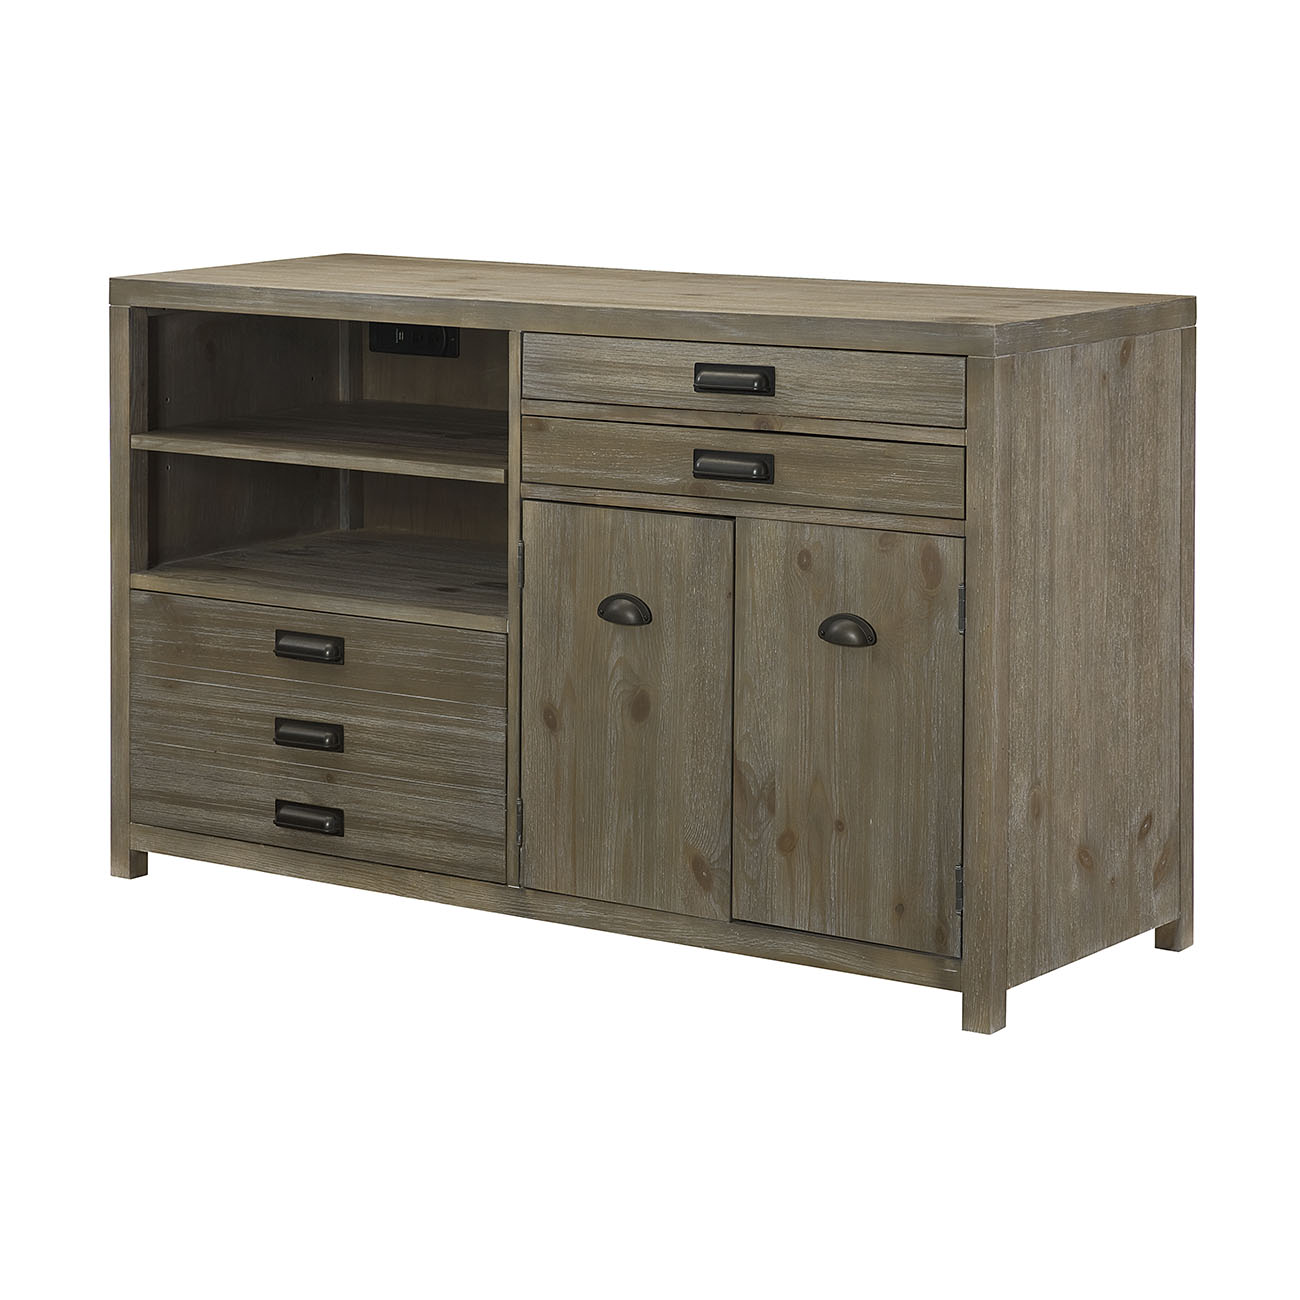 Hammary Parsons Credenza Desk - Item Number: 444-943